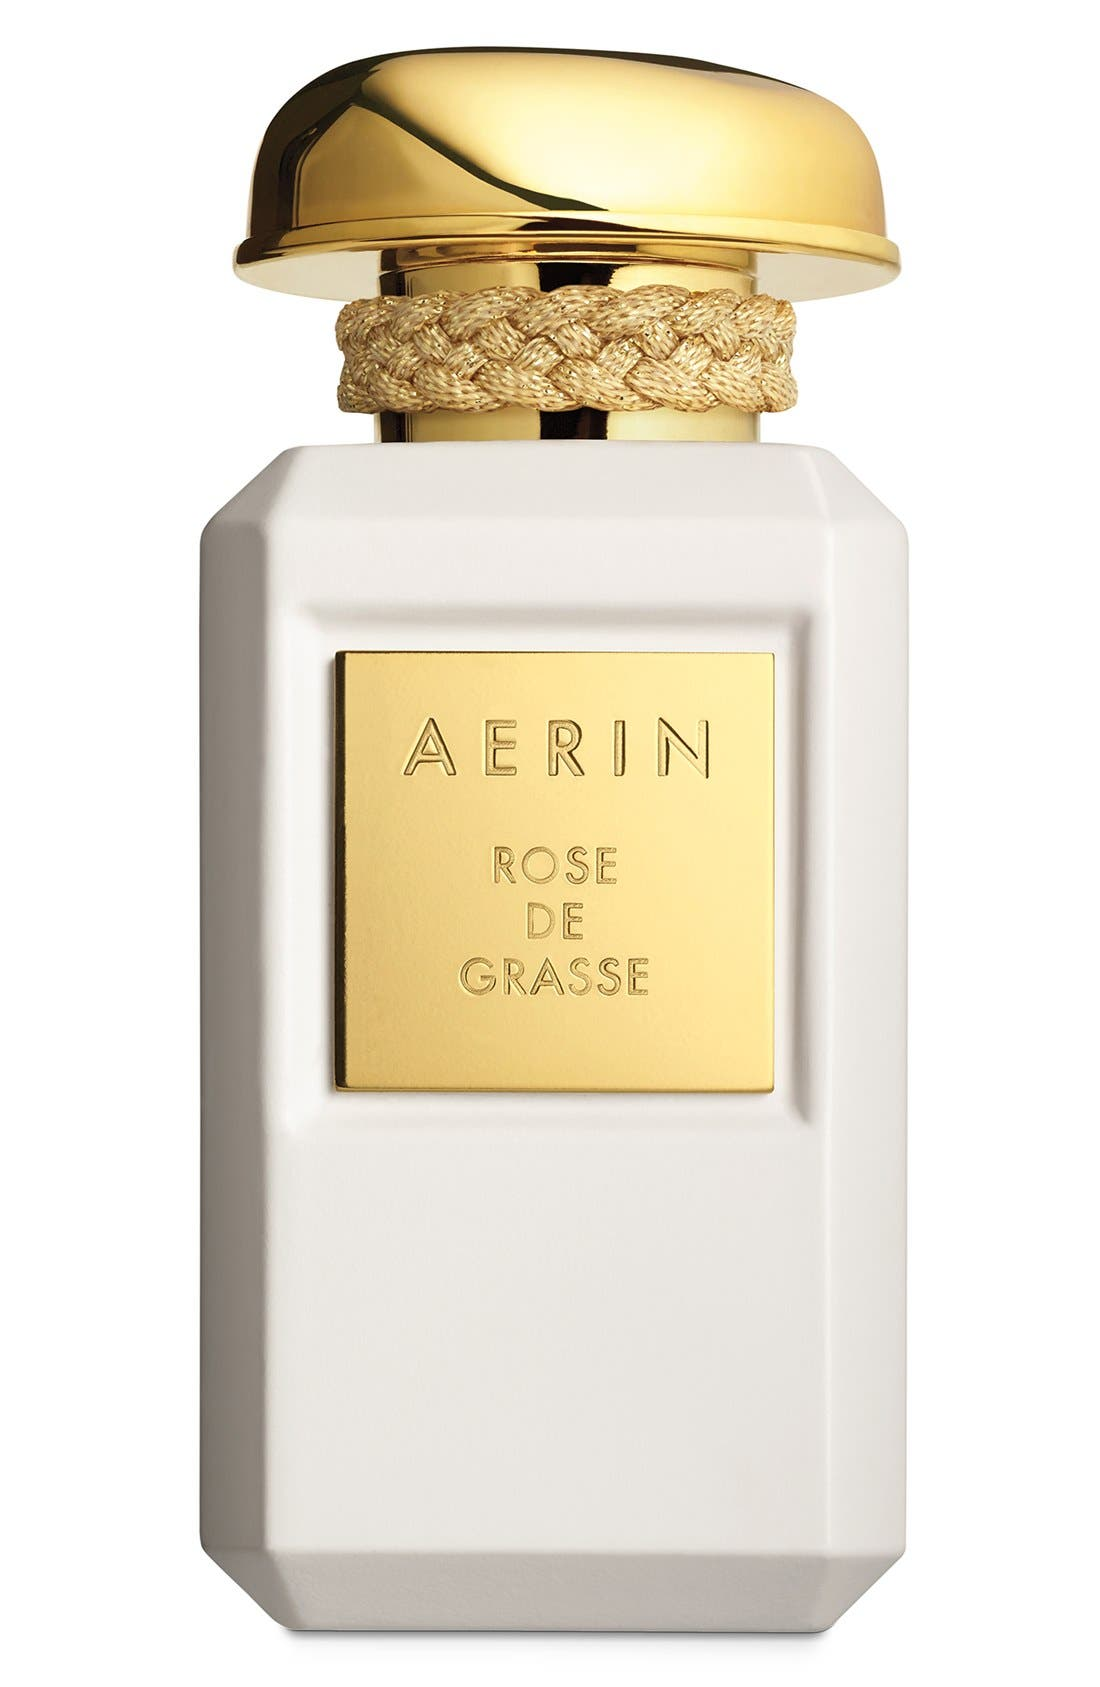 Aerin Beauty Rose De Grasse Parfum